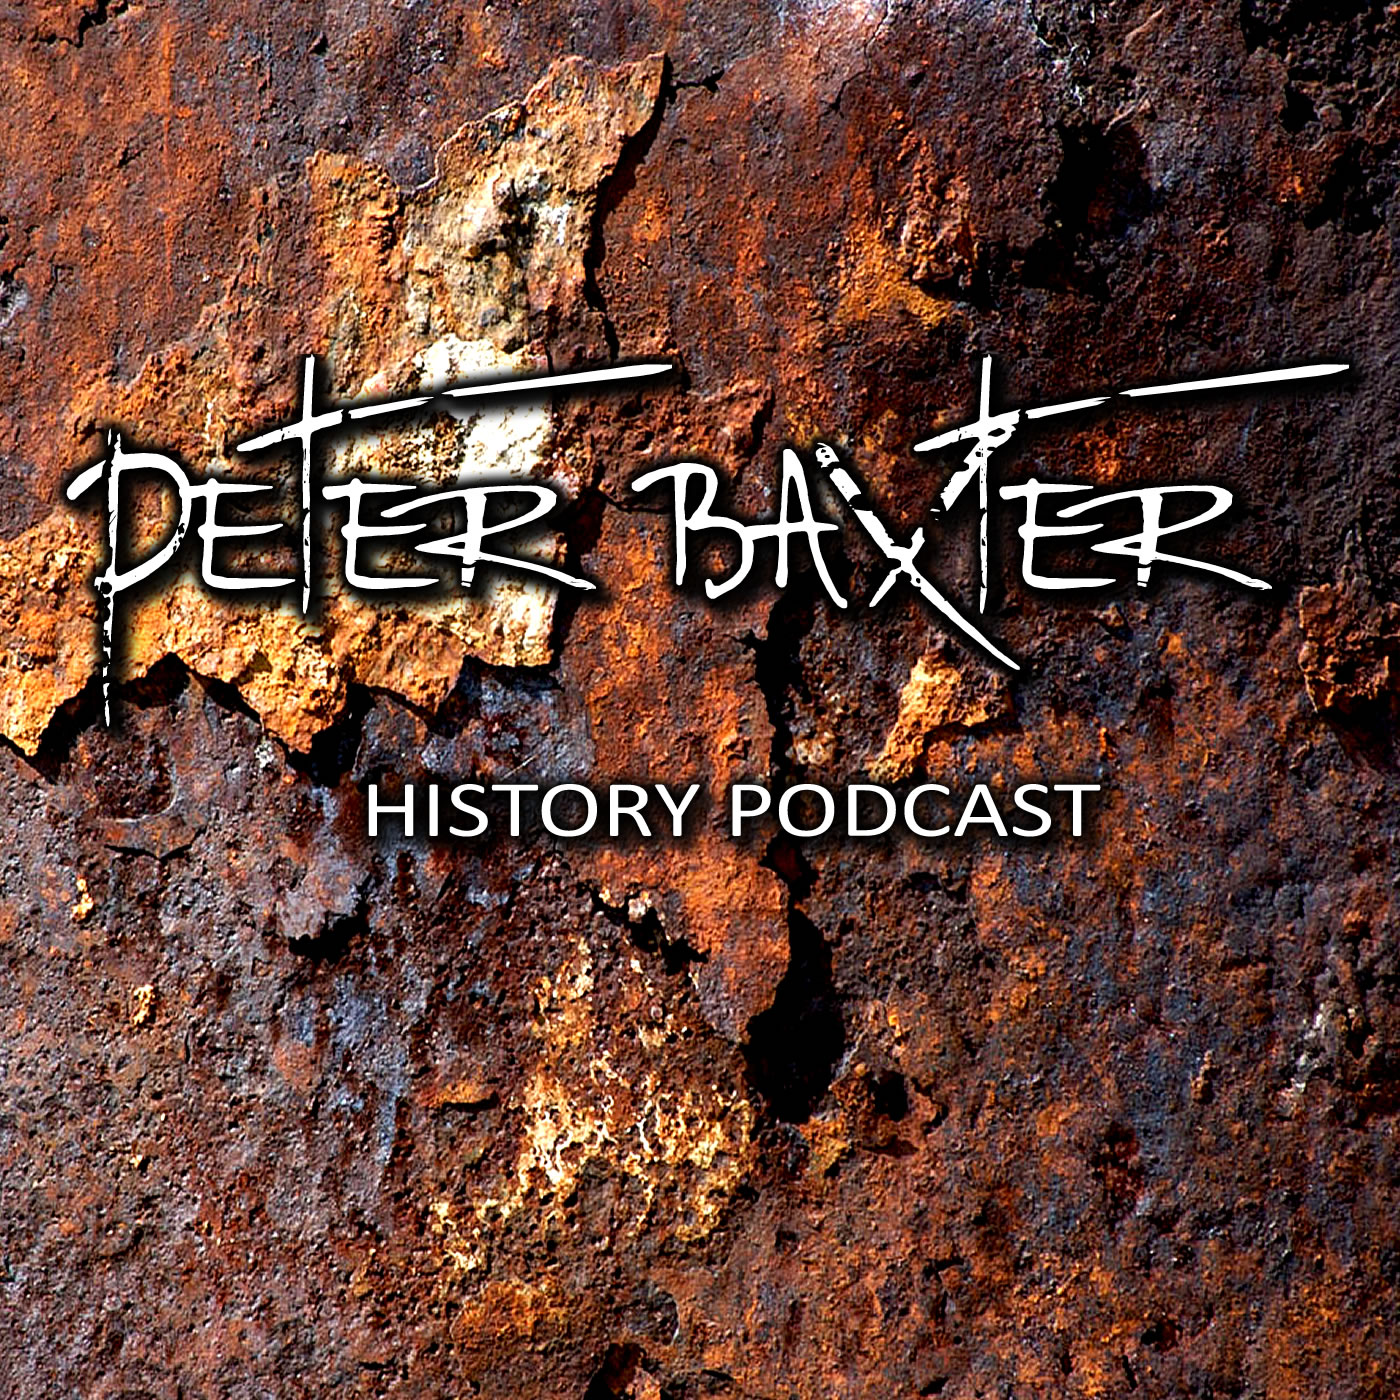 Peter Baxter History